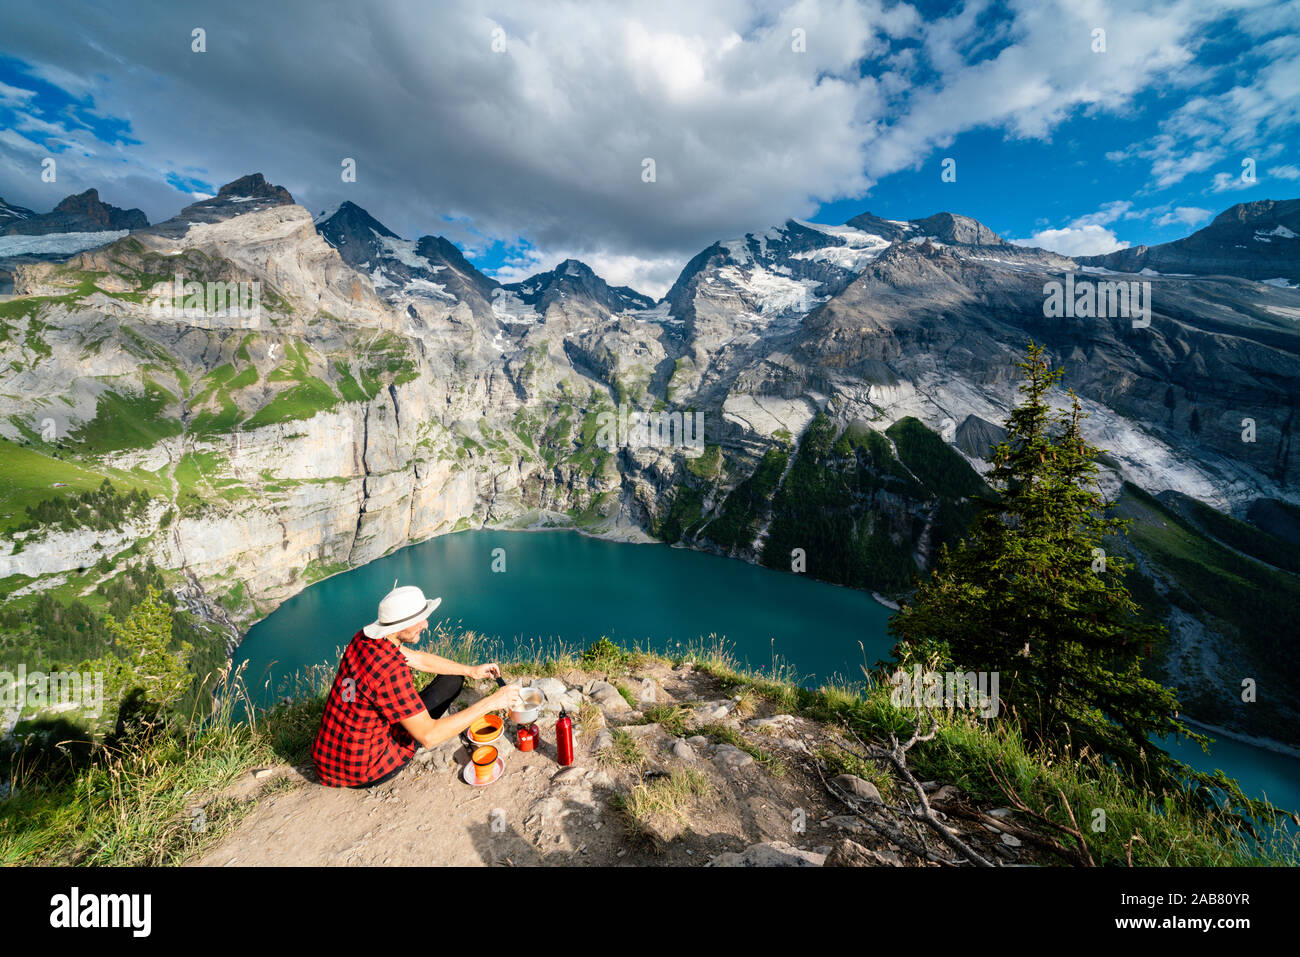 Hiker cooking food on camping stove high up above Oeschinensee lake, Bernese Oberland, Kandersteg, Canton of Bern, Switzerland, Europe Stock Photo